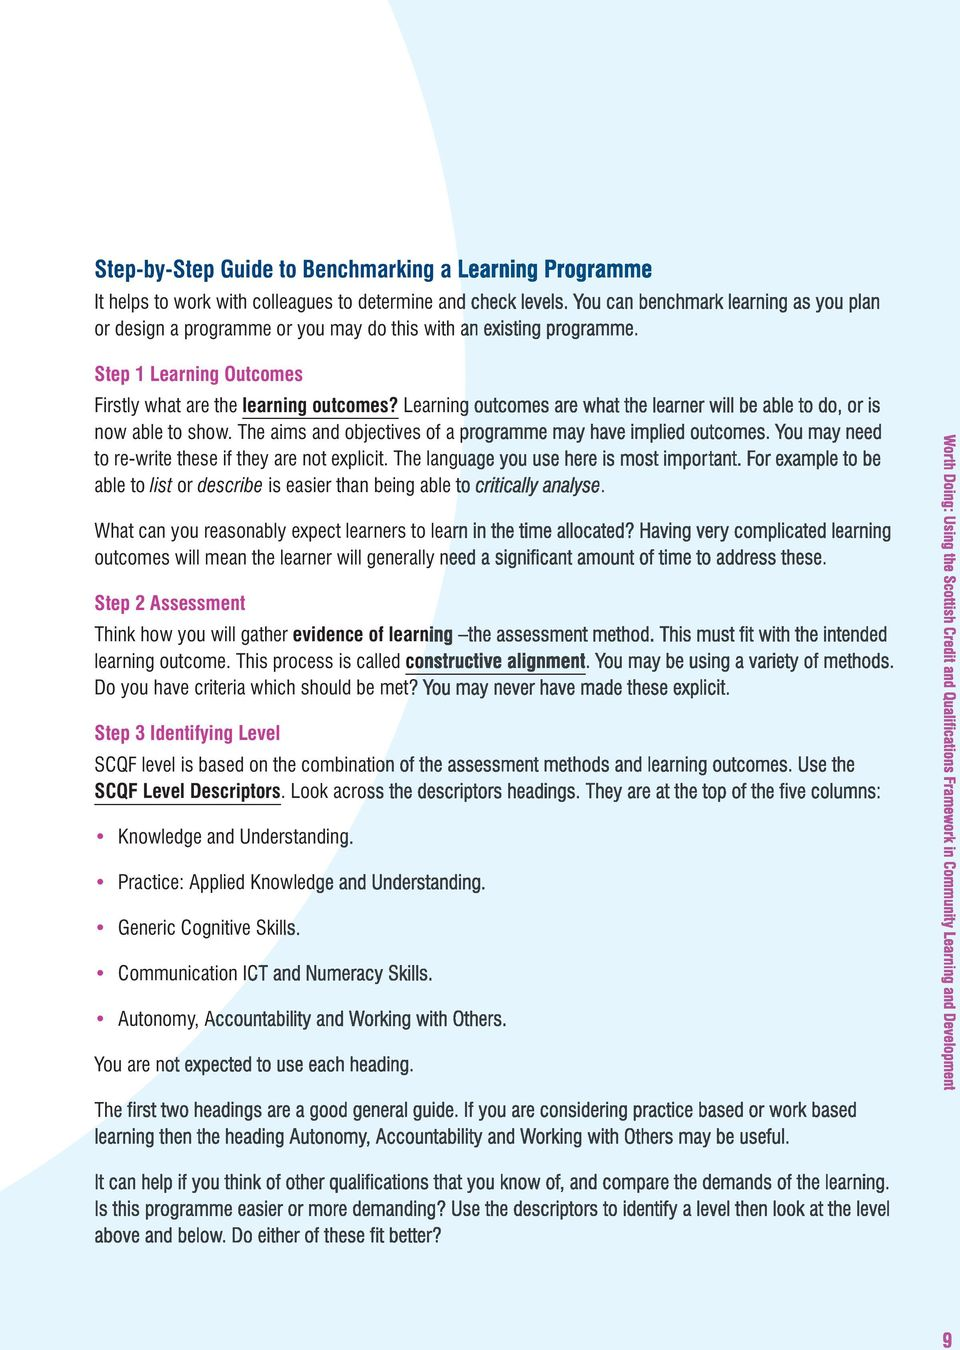 Learning outcomes are what the learner will be able to do, or is now able to show. The aims and objectives of a programme may have implied outcomes.